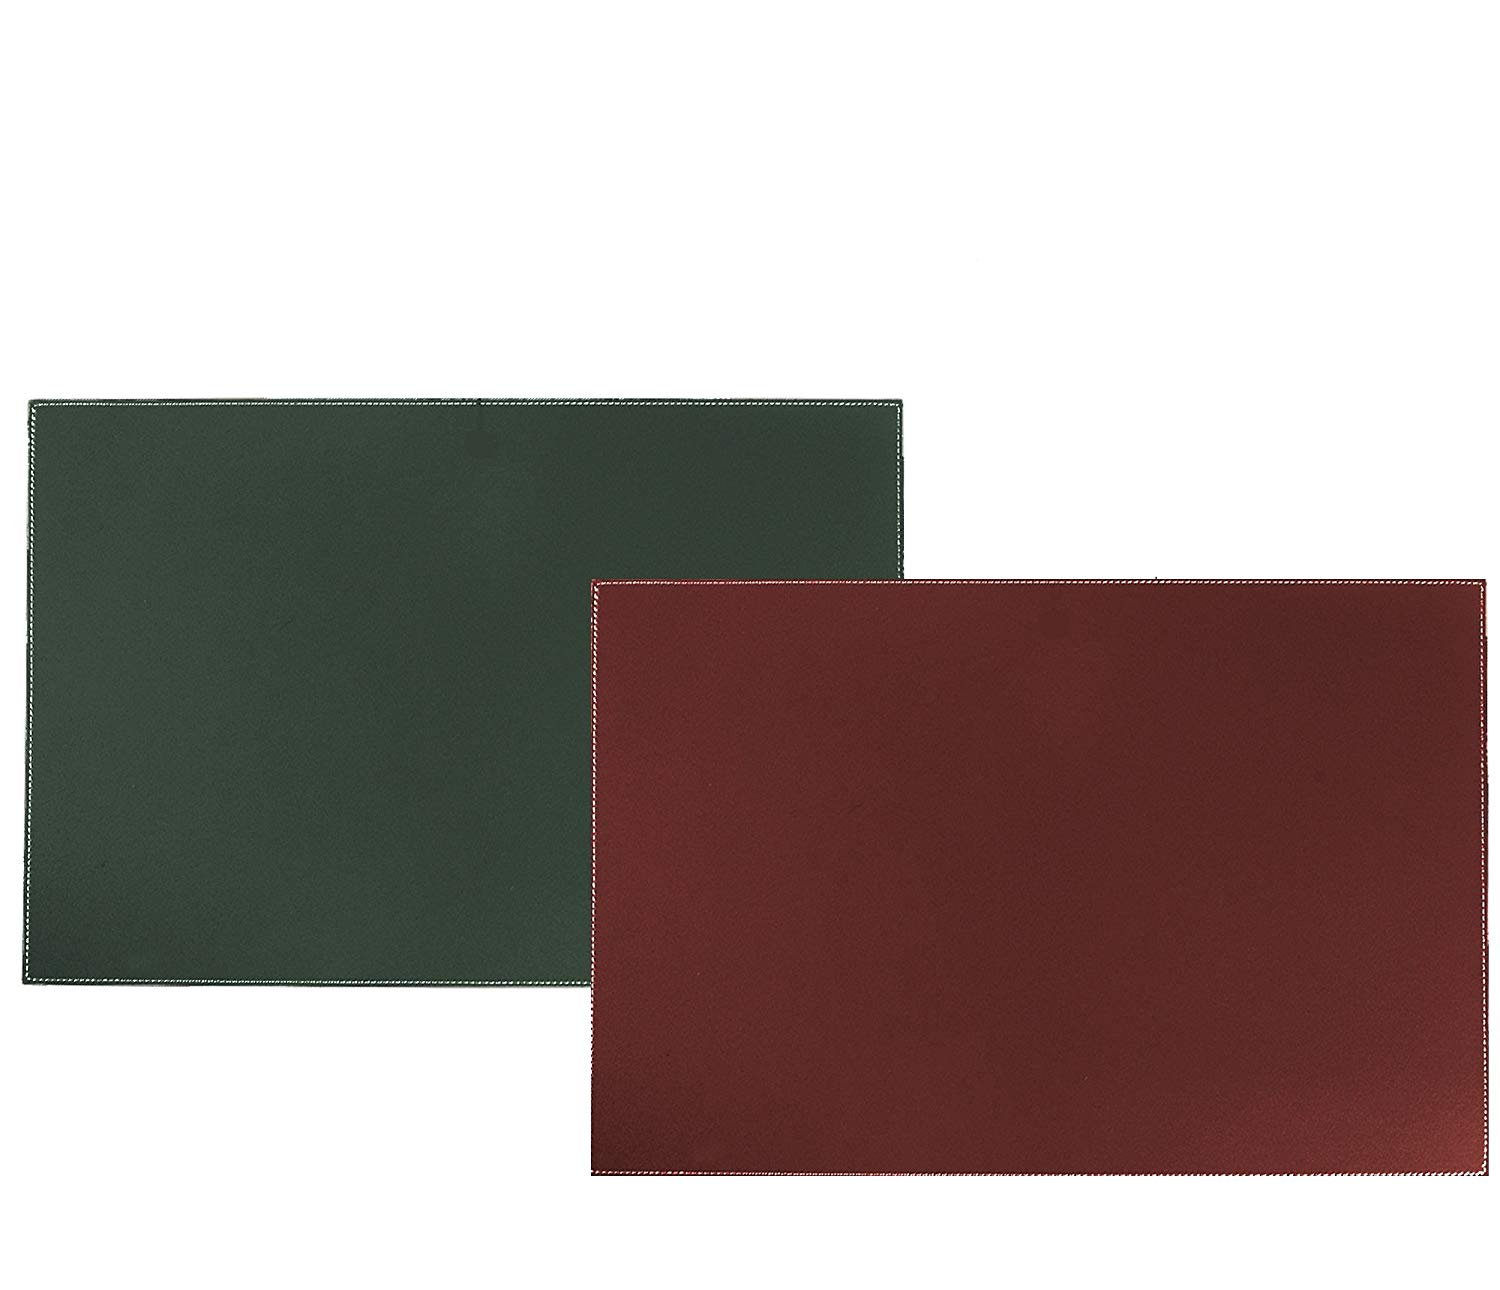 Desk Pad Blotter Protector Comfortable With Faux Leather Feels Smooth And Sturdy With Reversible Style Colors Forest Green To Burgundy, Size 16 X 24 Inches.